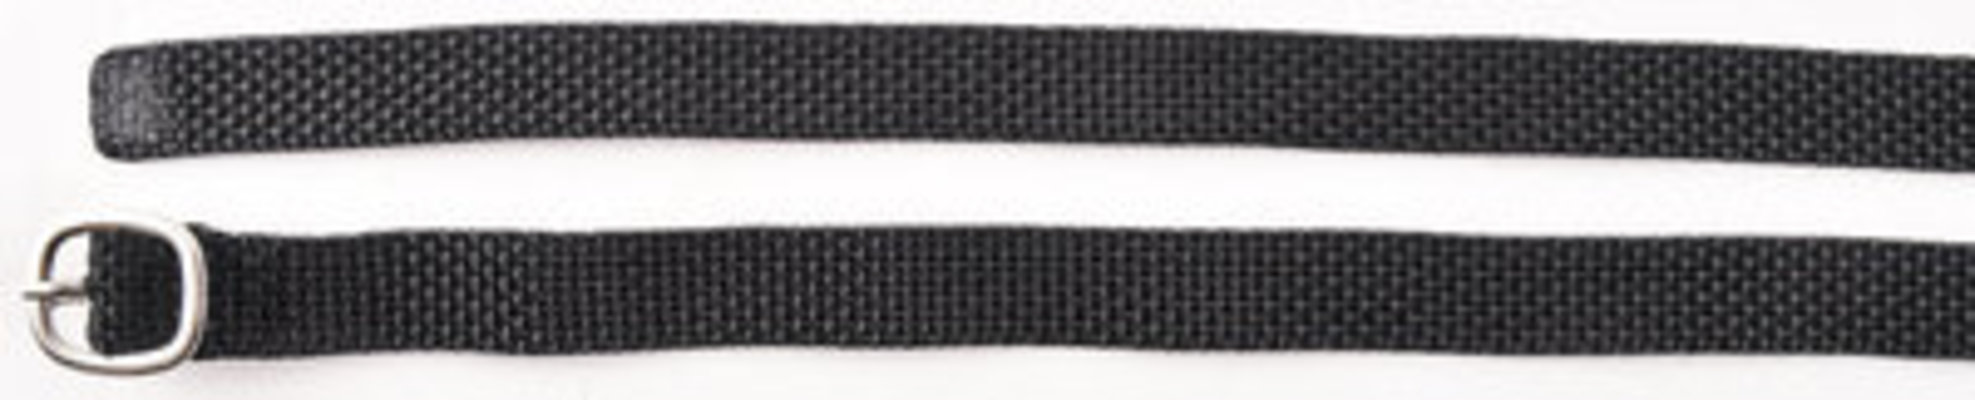 Kincade Braided Spur Straps, (pair)